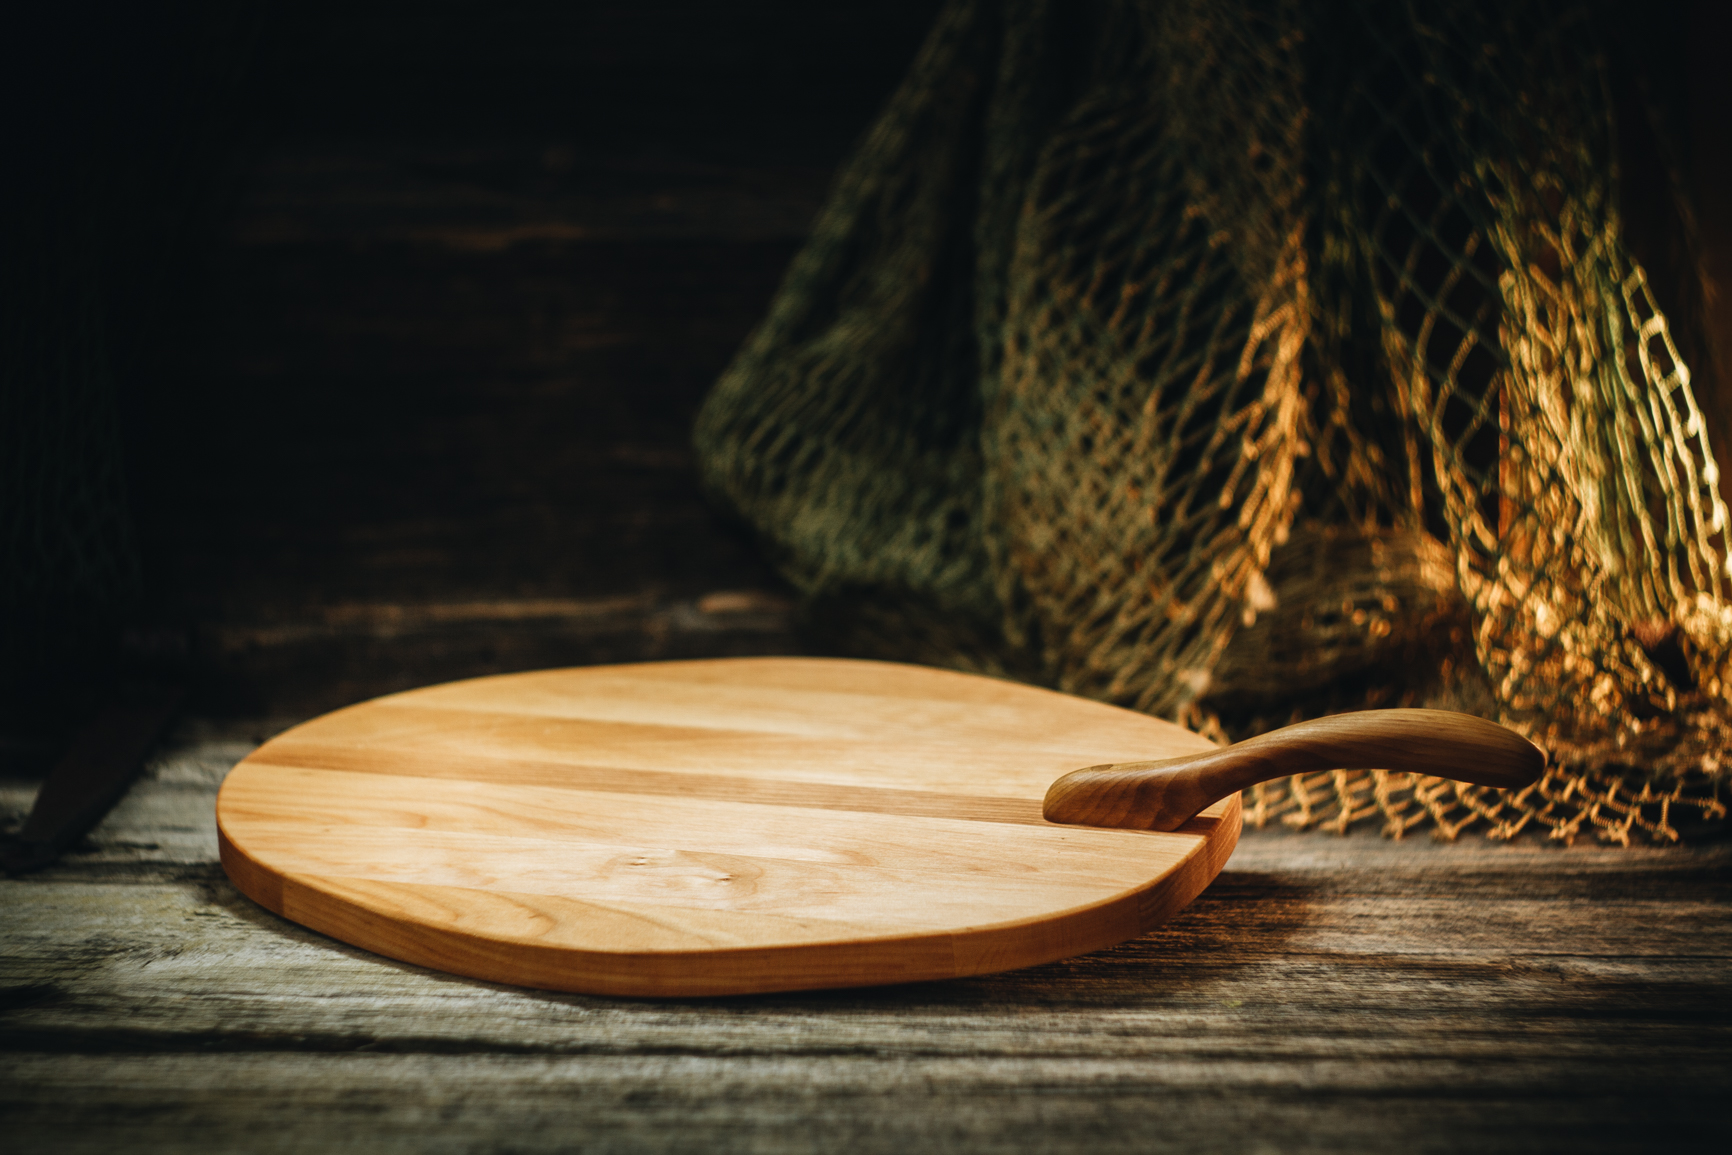 Lõikelaud sangaga (lepp)/ Cutting board with handle (alder)